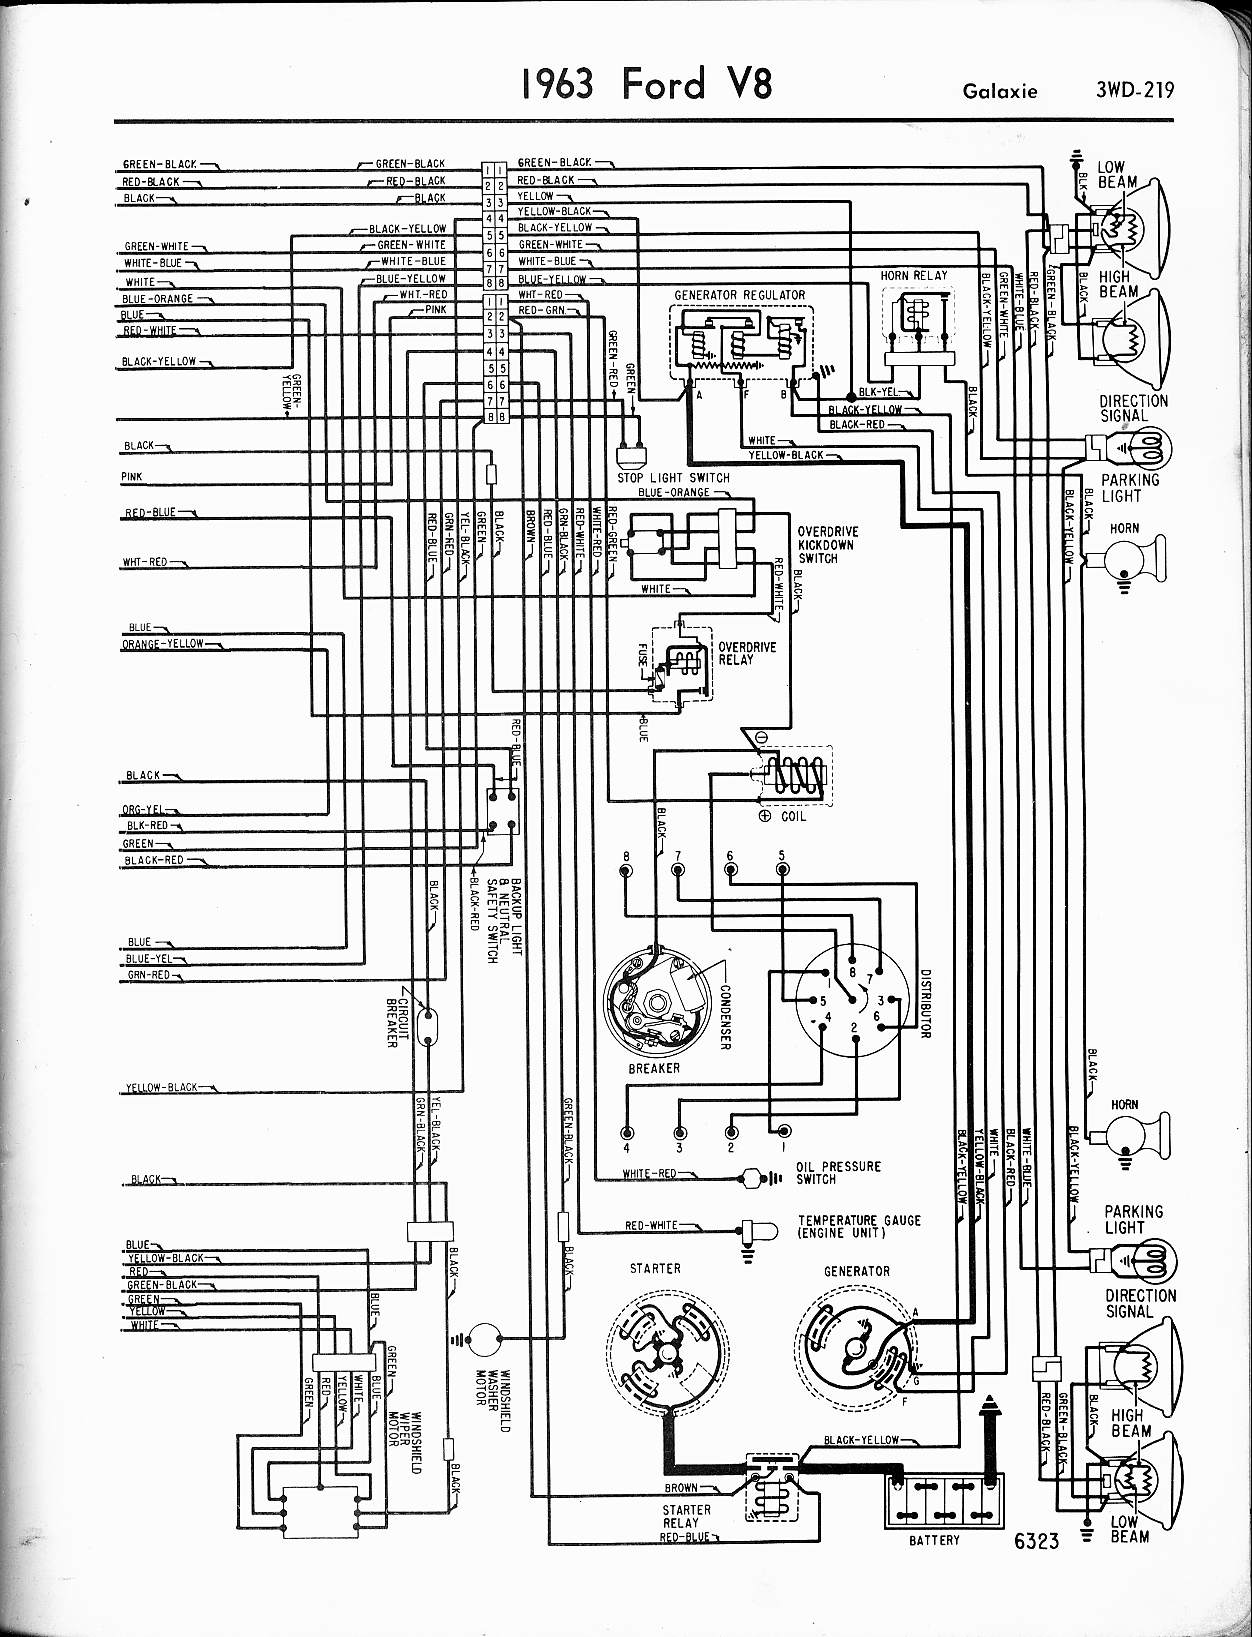 MWire5765 219 57 65 ford wiring diagrams 2004 ford galaxy fuse box diagram at soozxer.org